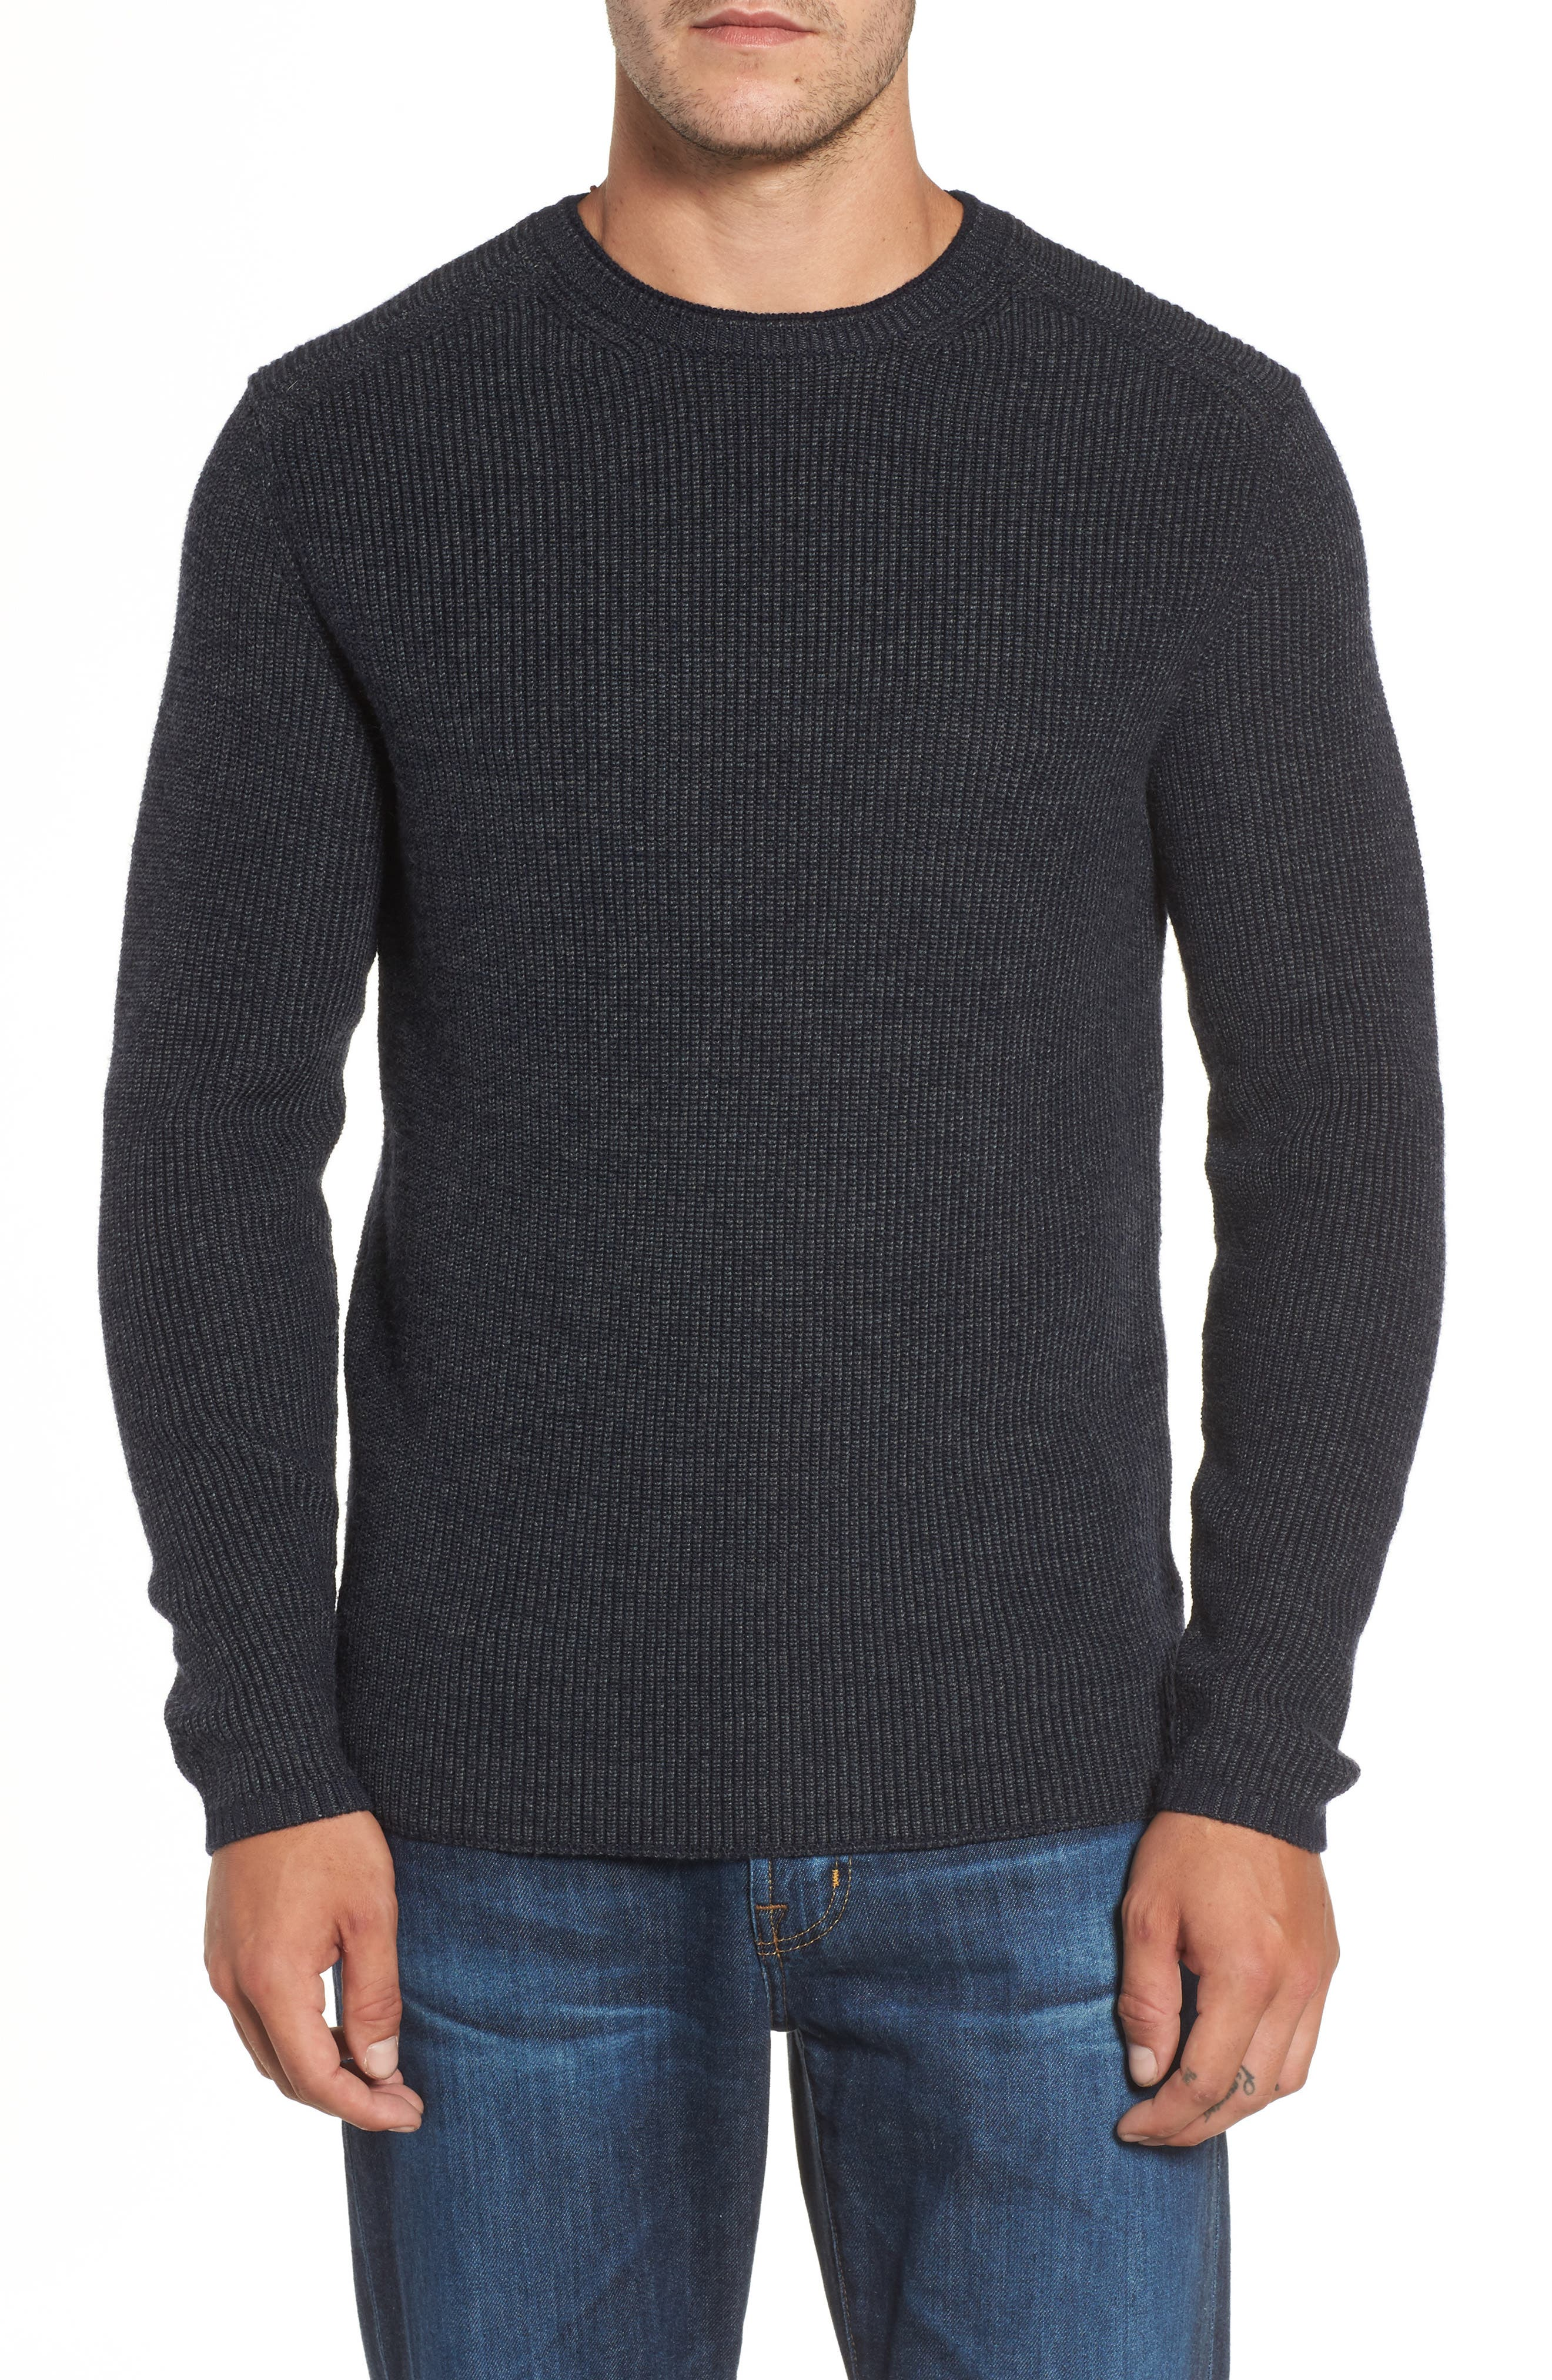 Whalers Bay Ribbed Merino Wool Sweater,                             Main thumbnail 1, color,                             470